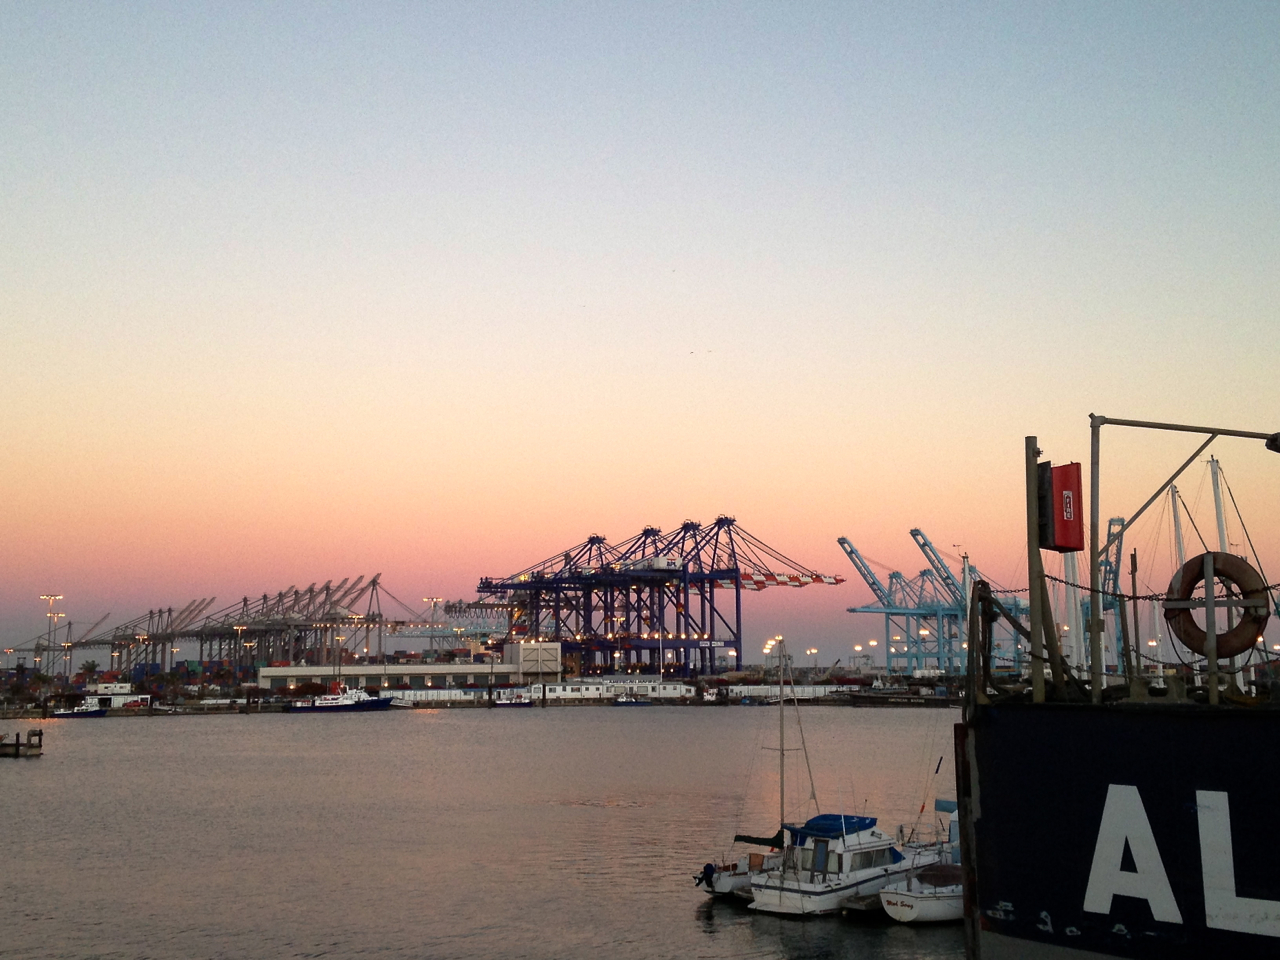 The view from Terminal Island, California.